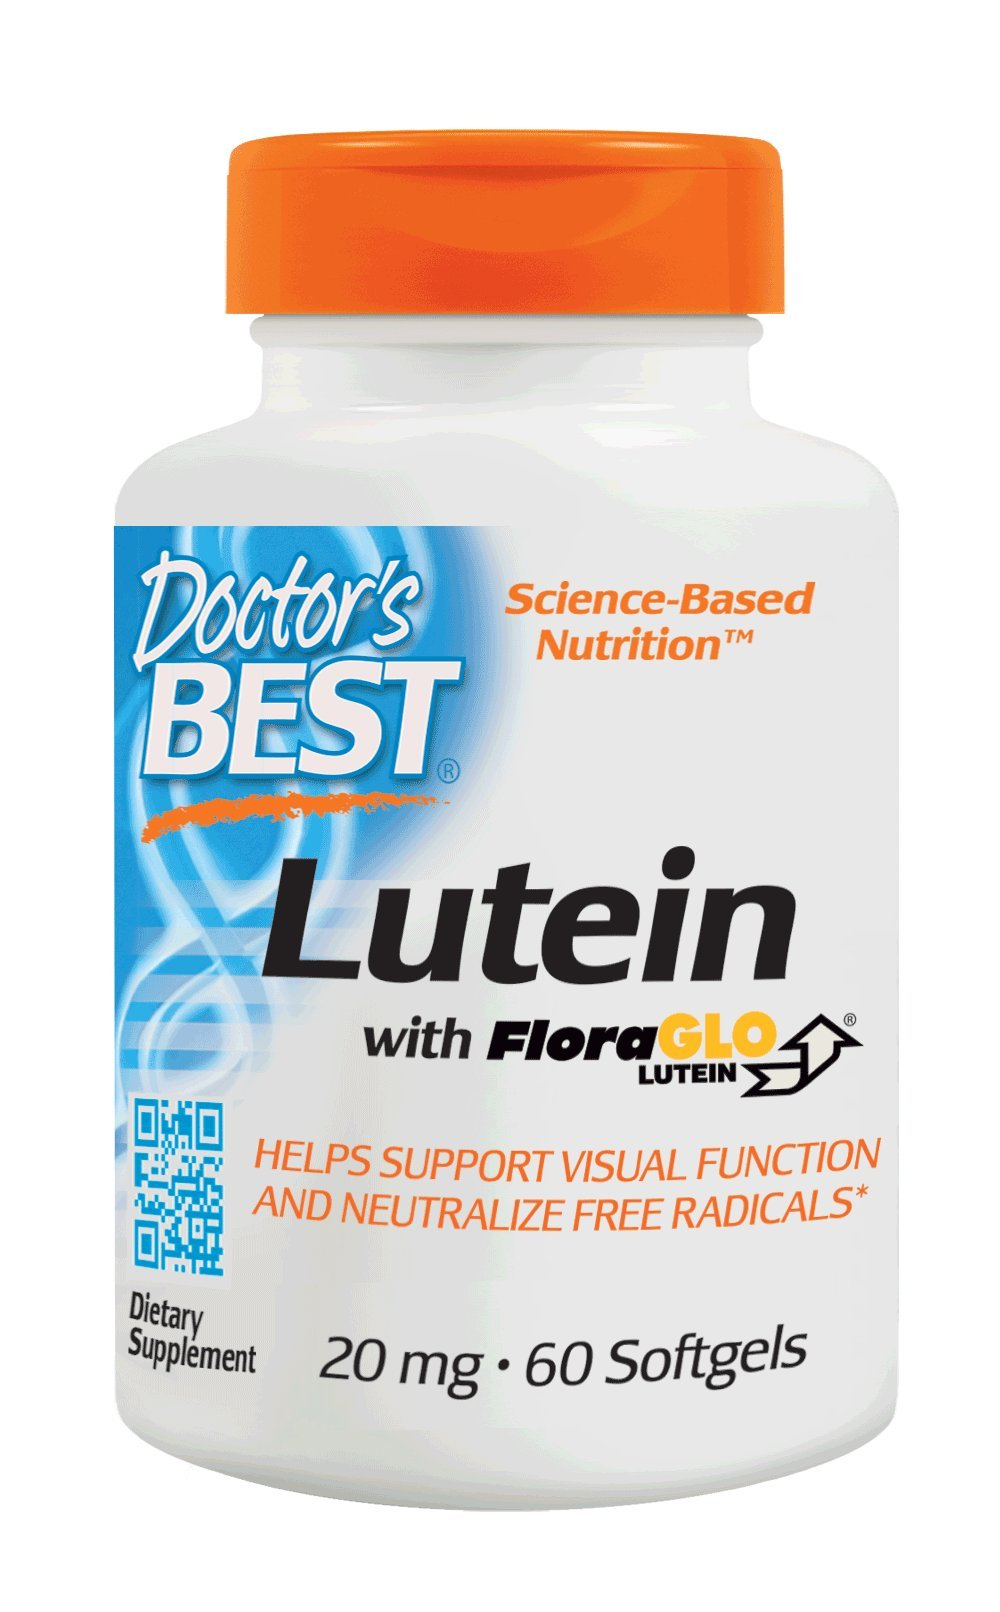 Doctor's Best Lutein with FloraGLO, Gluten Free, Vision Support, 60 Softgels